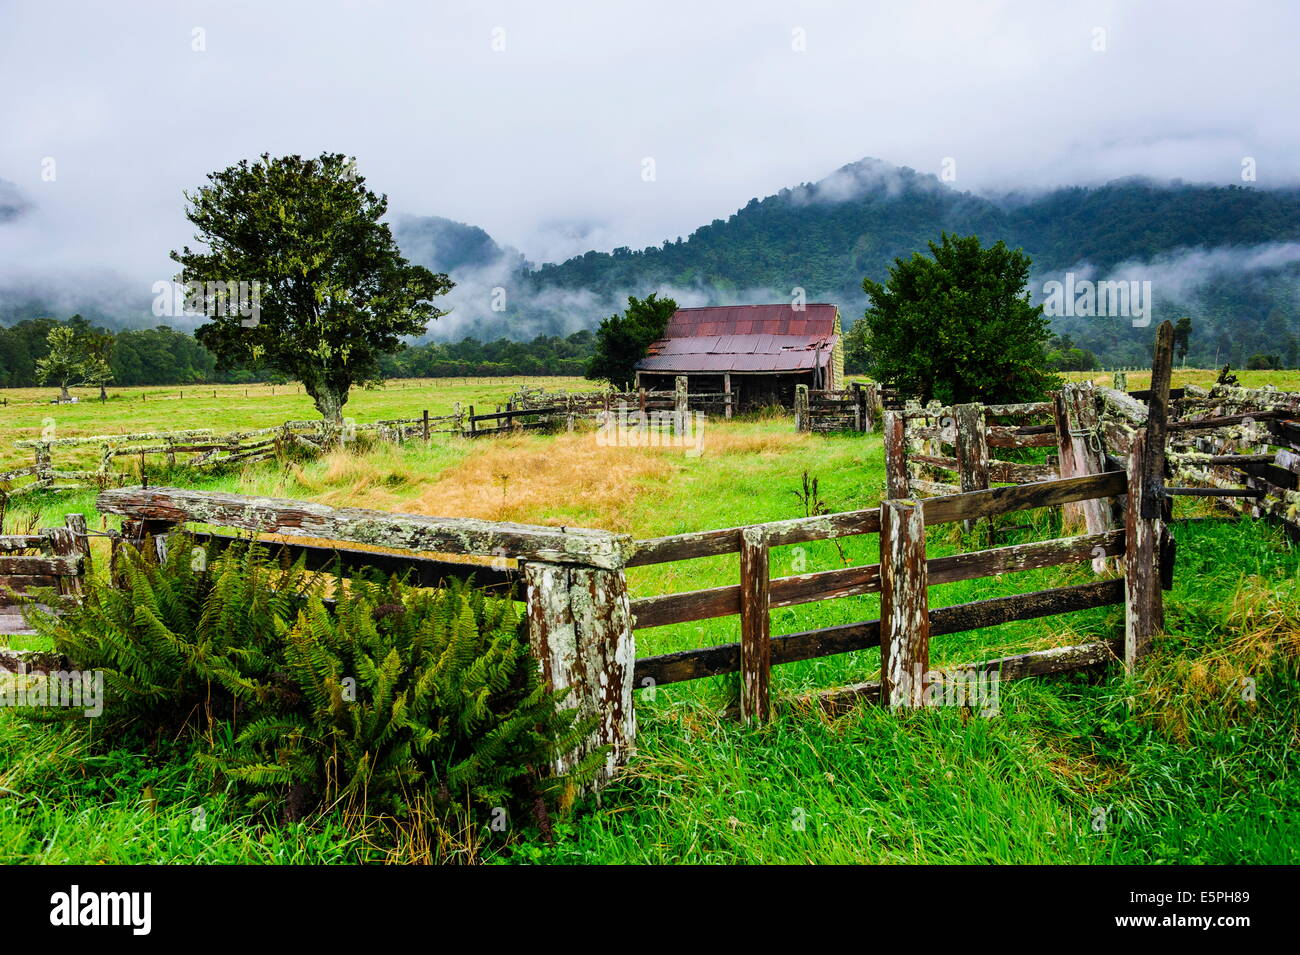 Old farm in a moody atmosphere, West Coast around Haast, South Island, New Zealand, Pacific - Stock Image